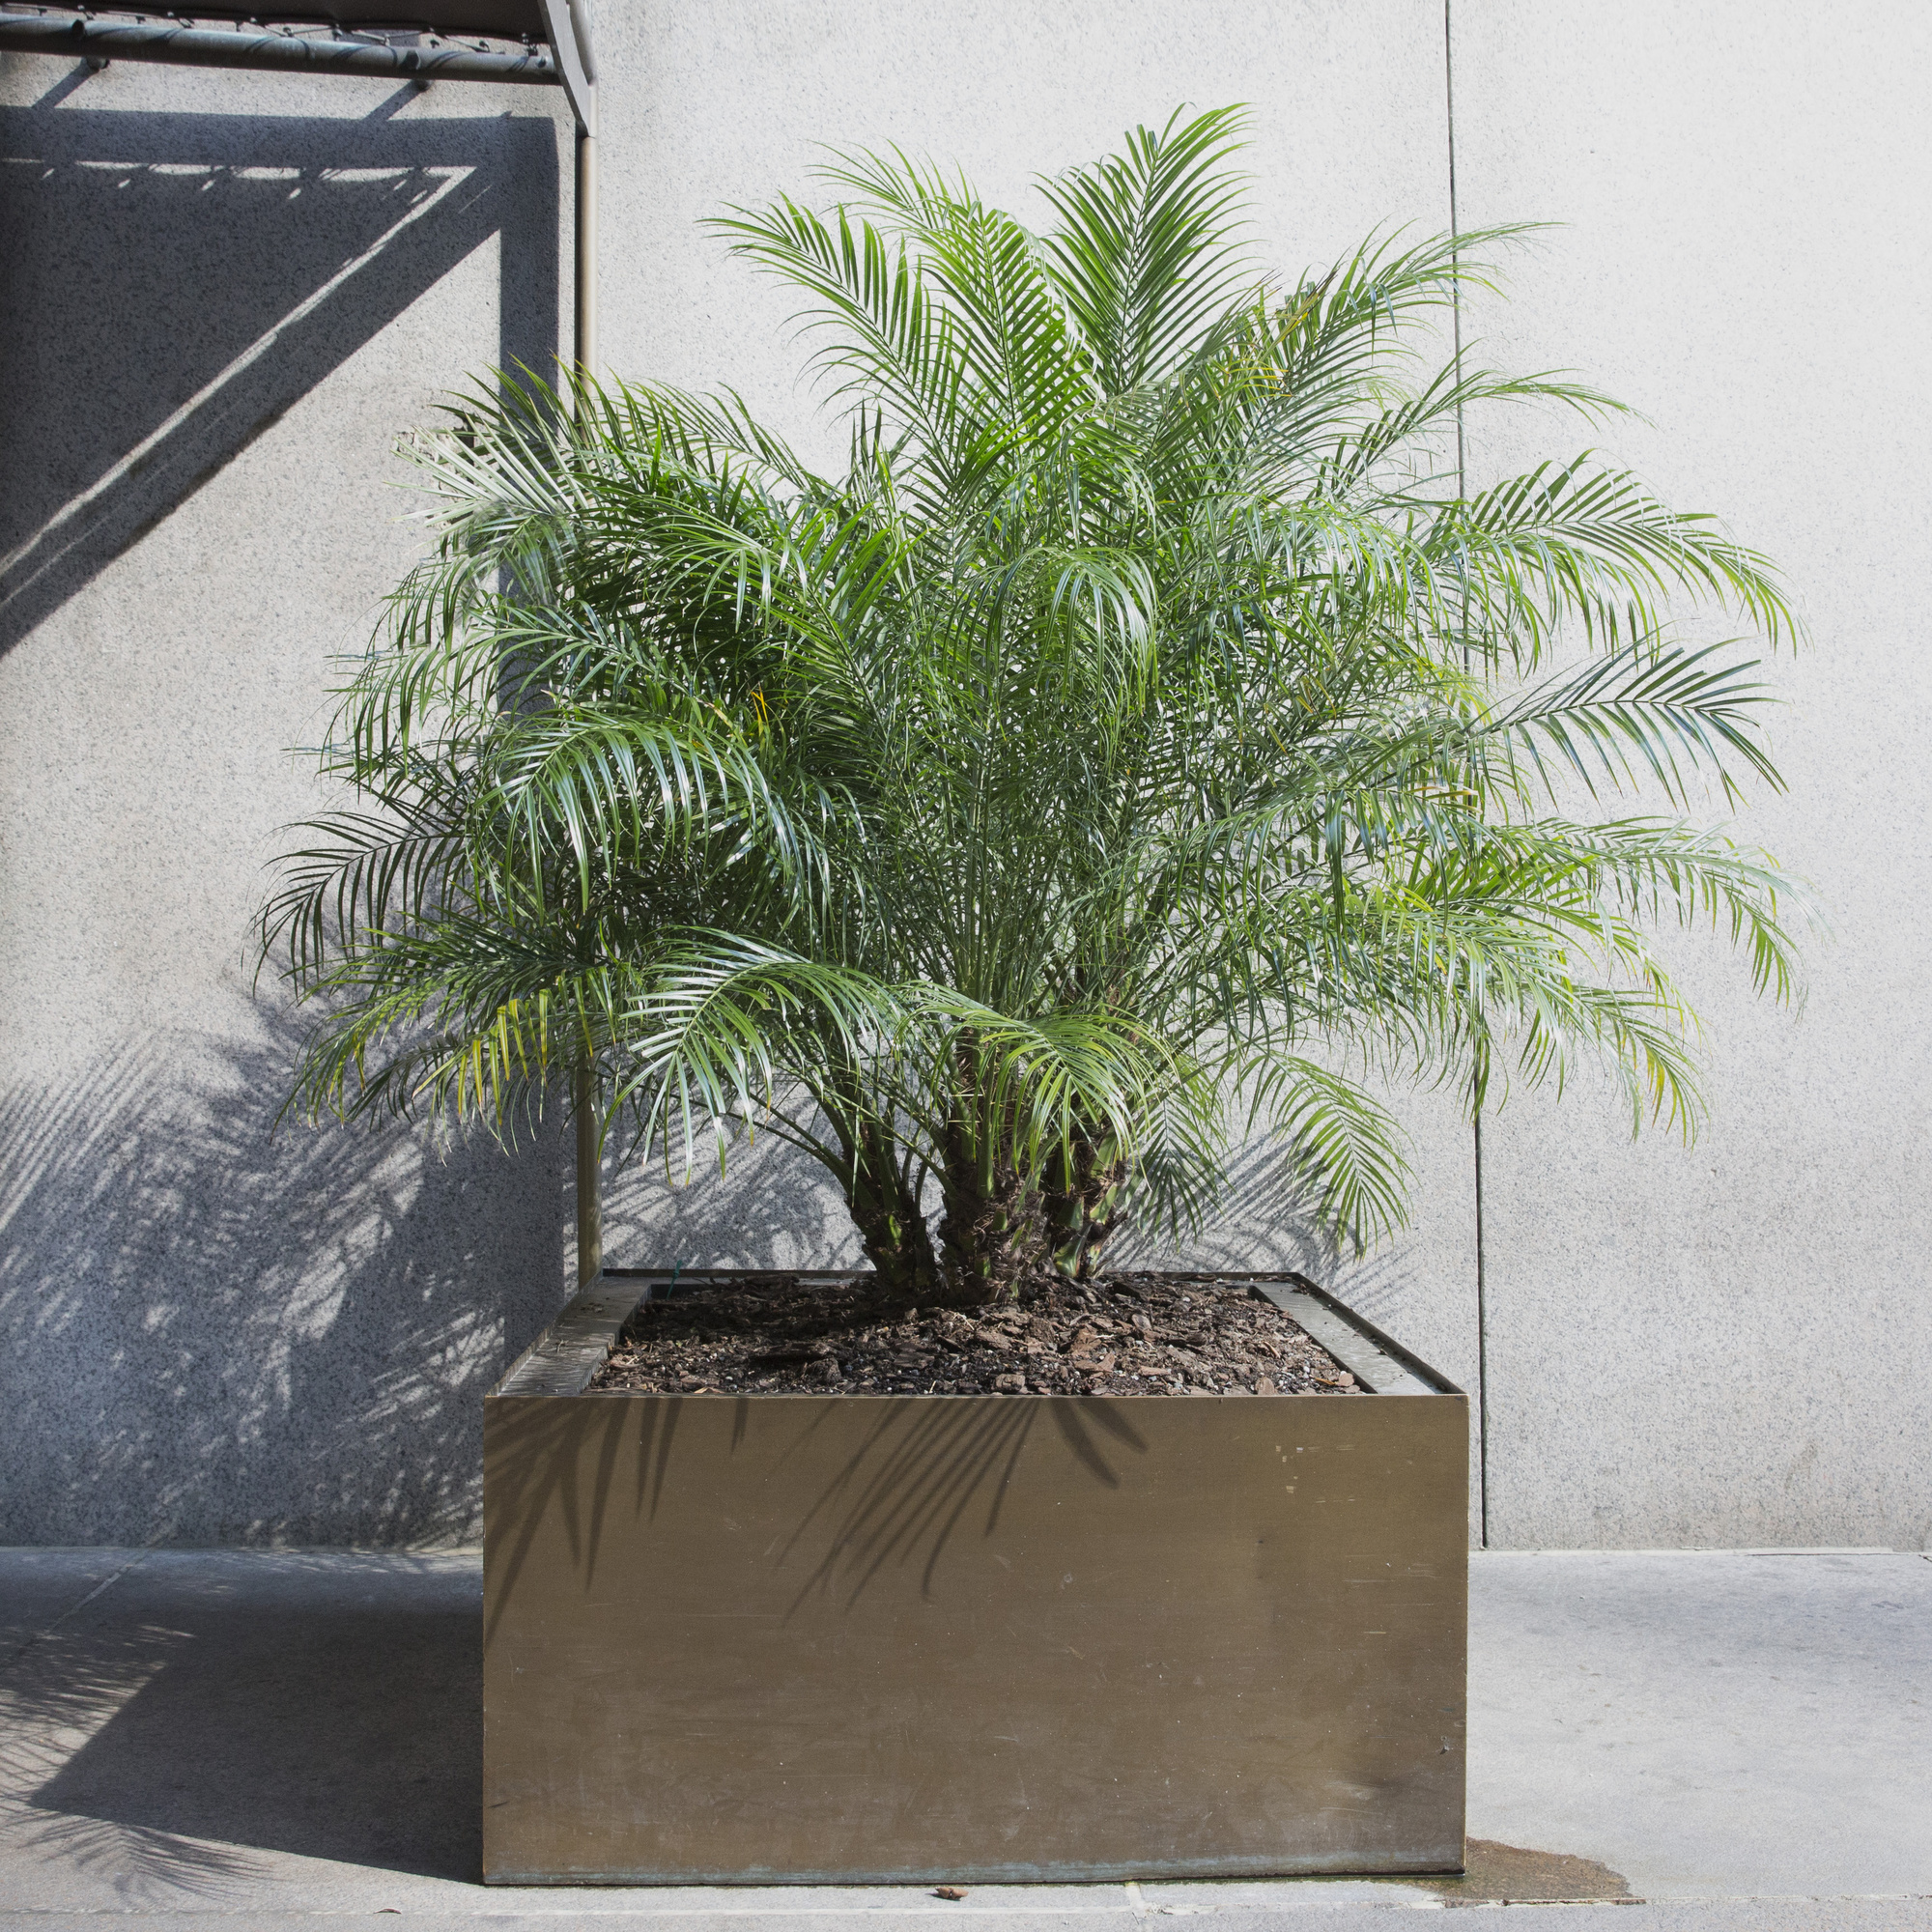 162:  / Planter from the entrance of The Four Seasons (1 of 1)